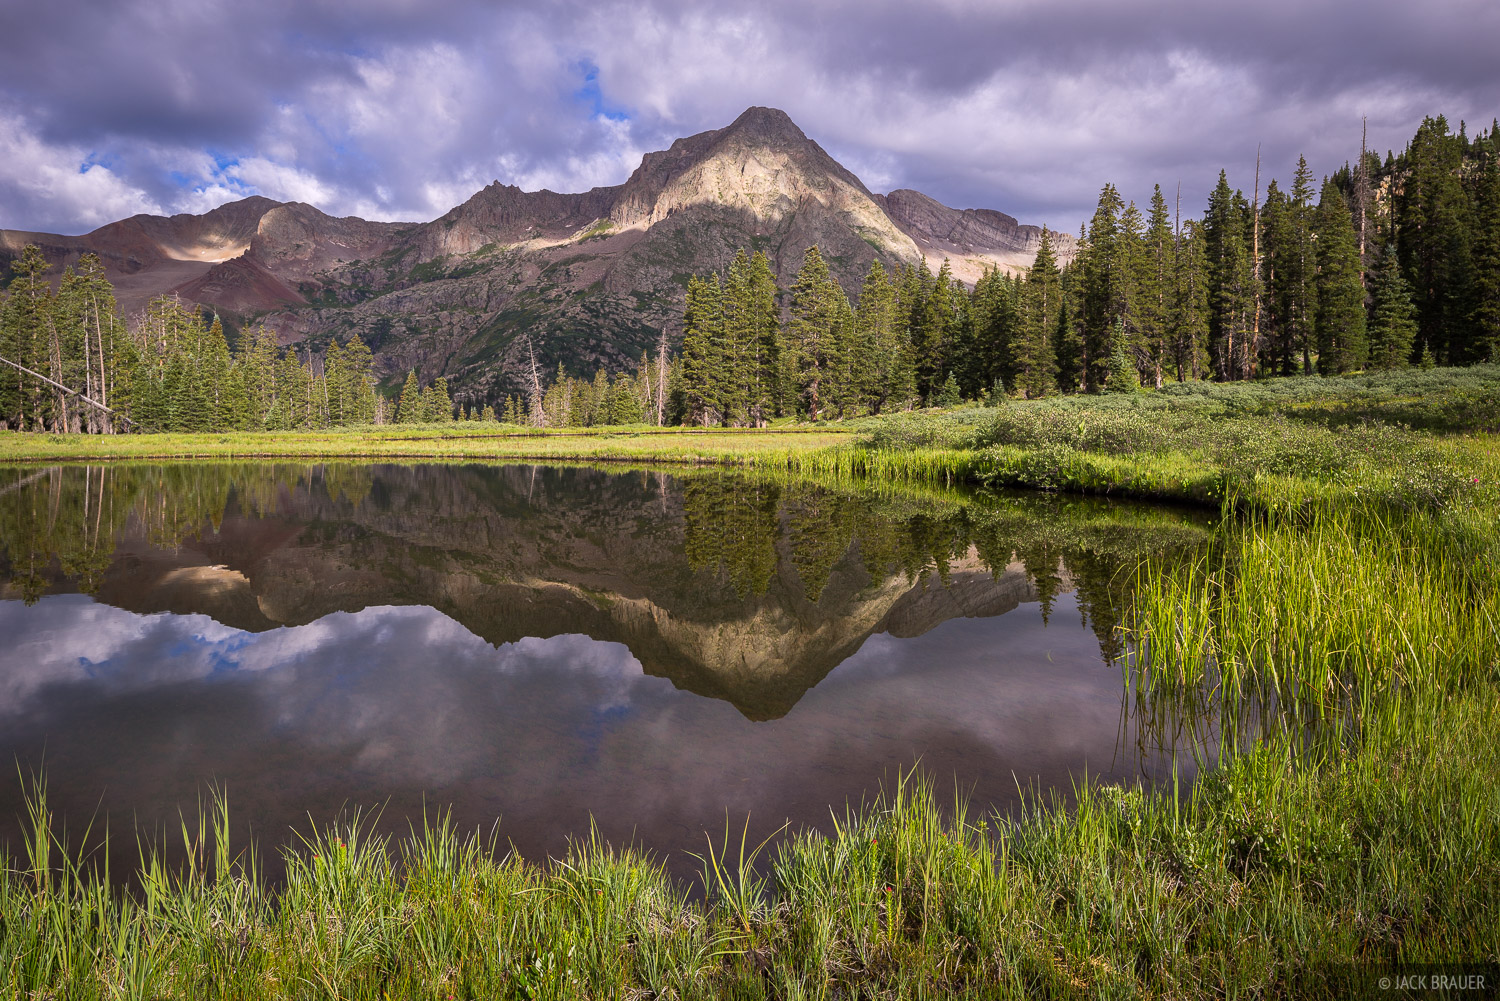 Colorado,Grizzly Peak,San Juan Mountains, photo